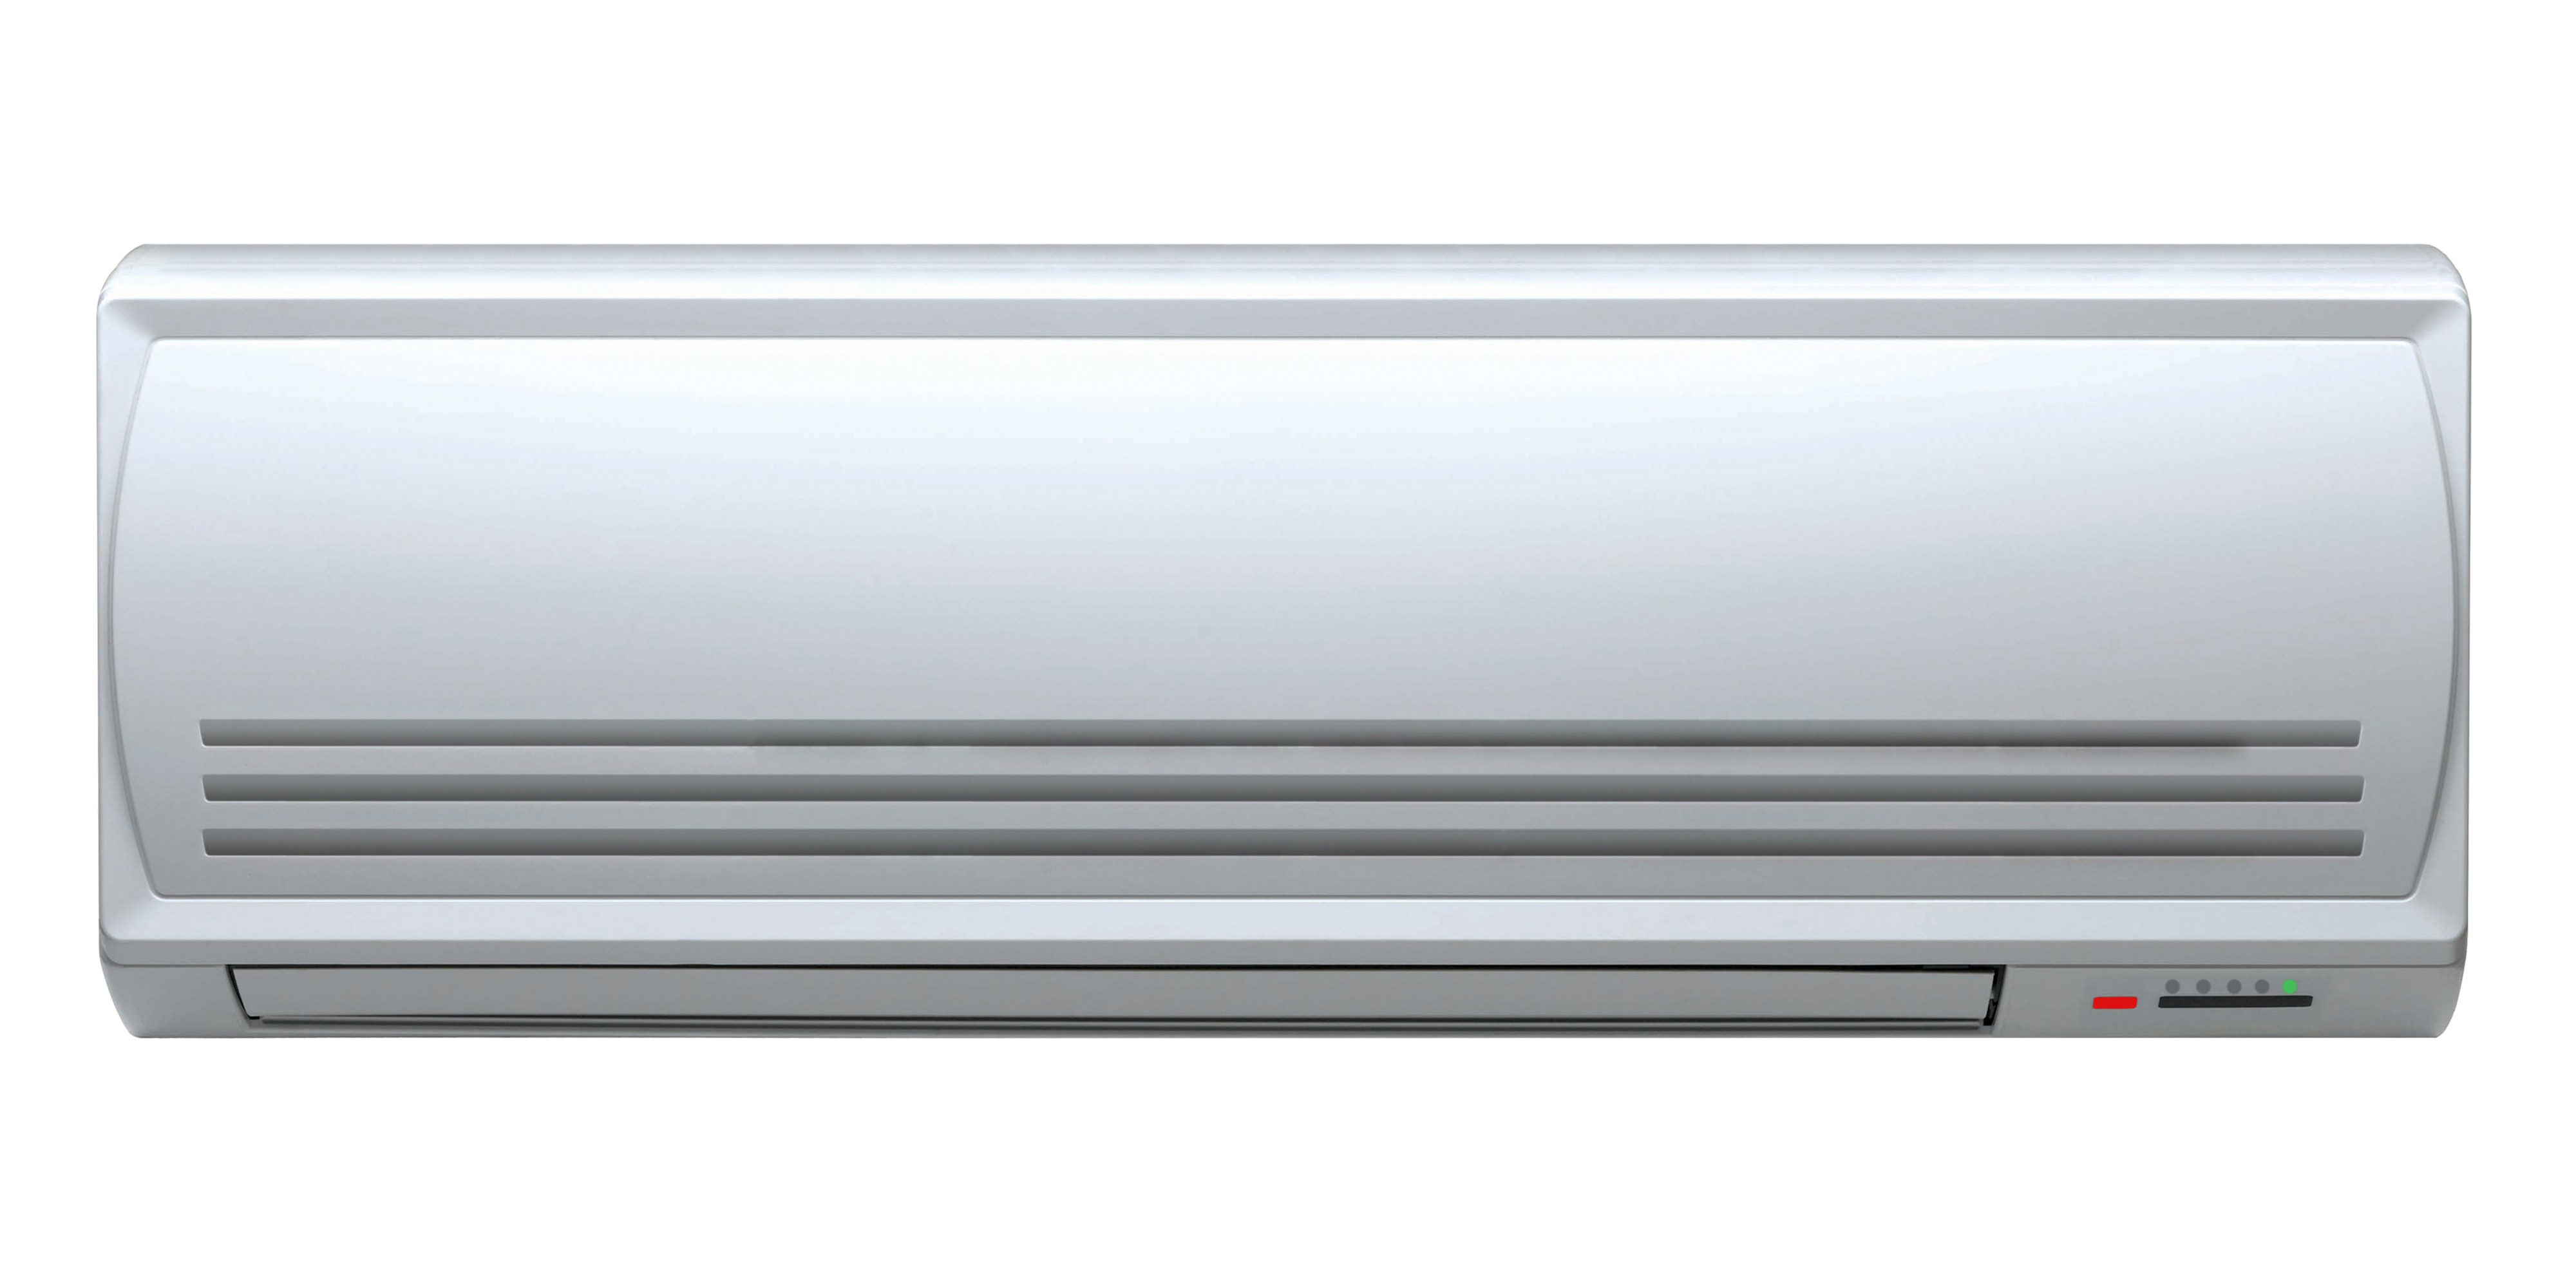 Ductless heating and air system